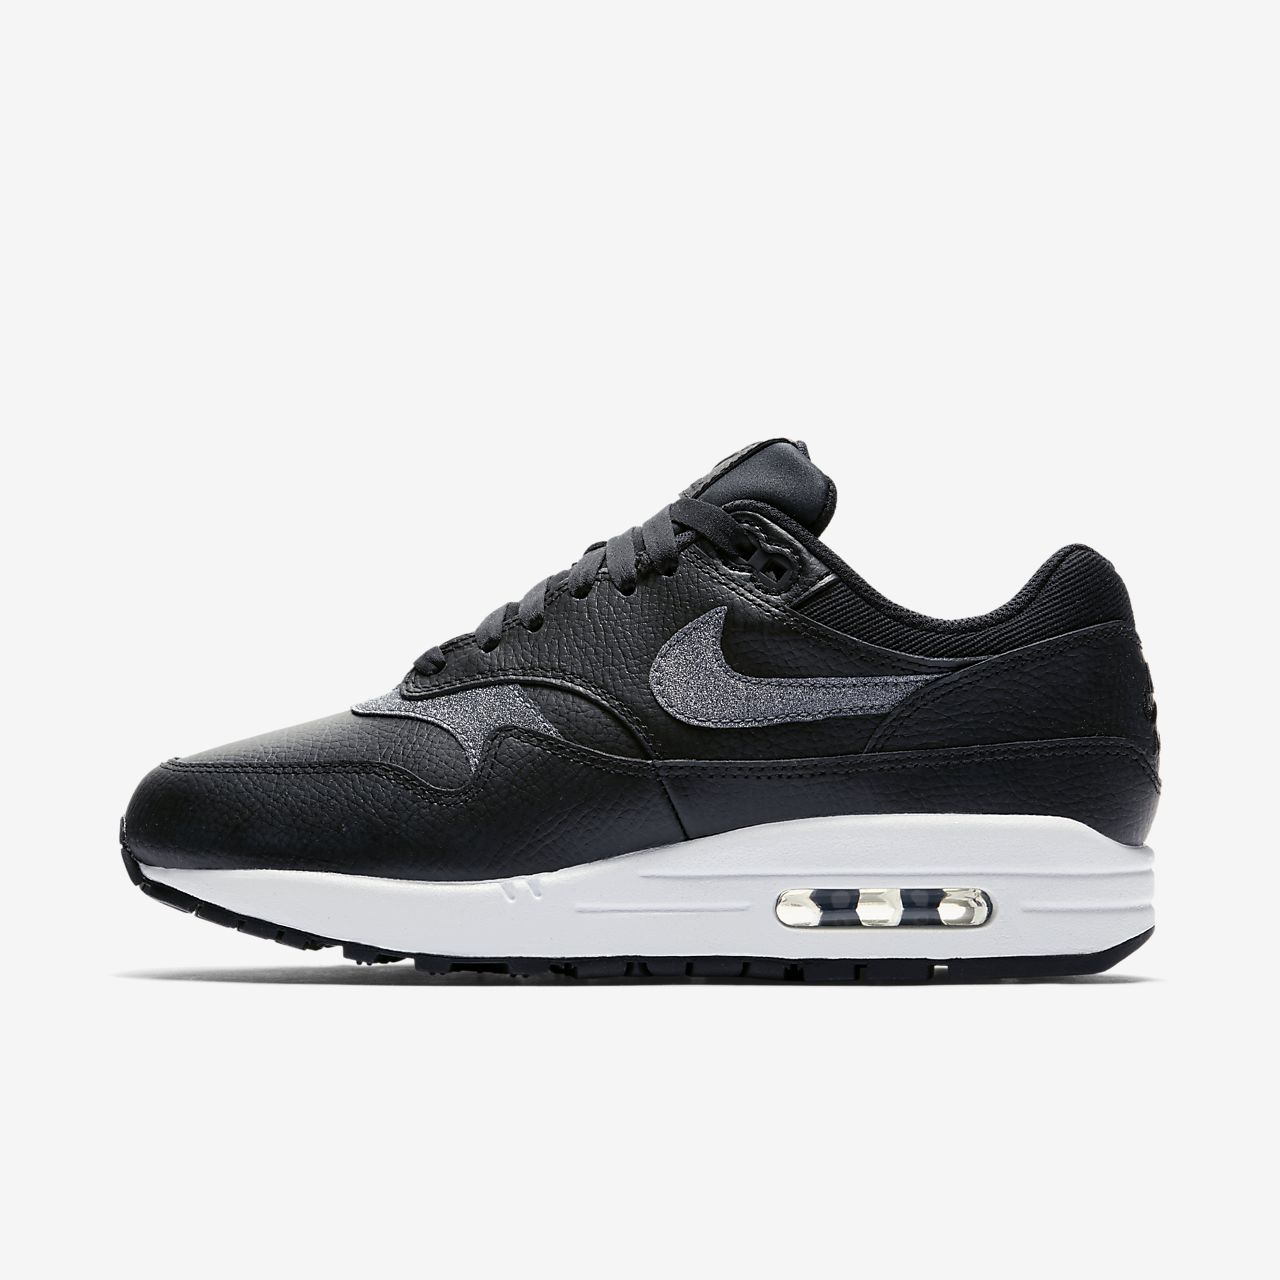 low priced 7d8a9 cc6ab ... Nike Air Max 1 SE Glitter Women s Shoe